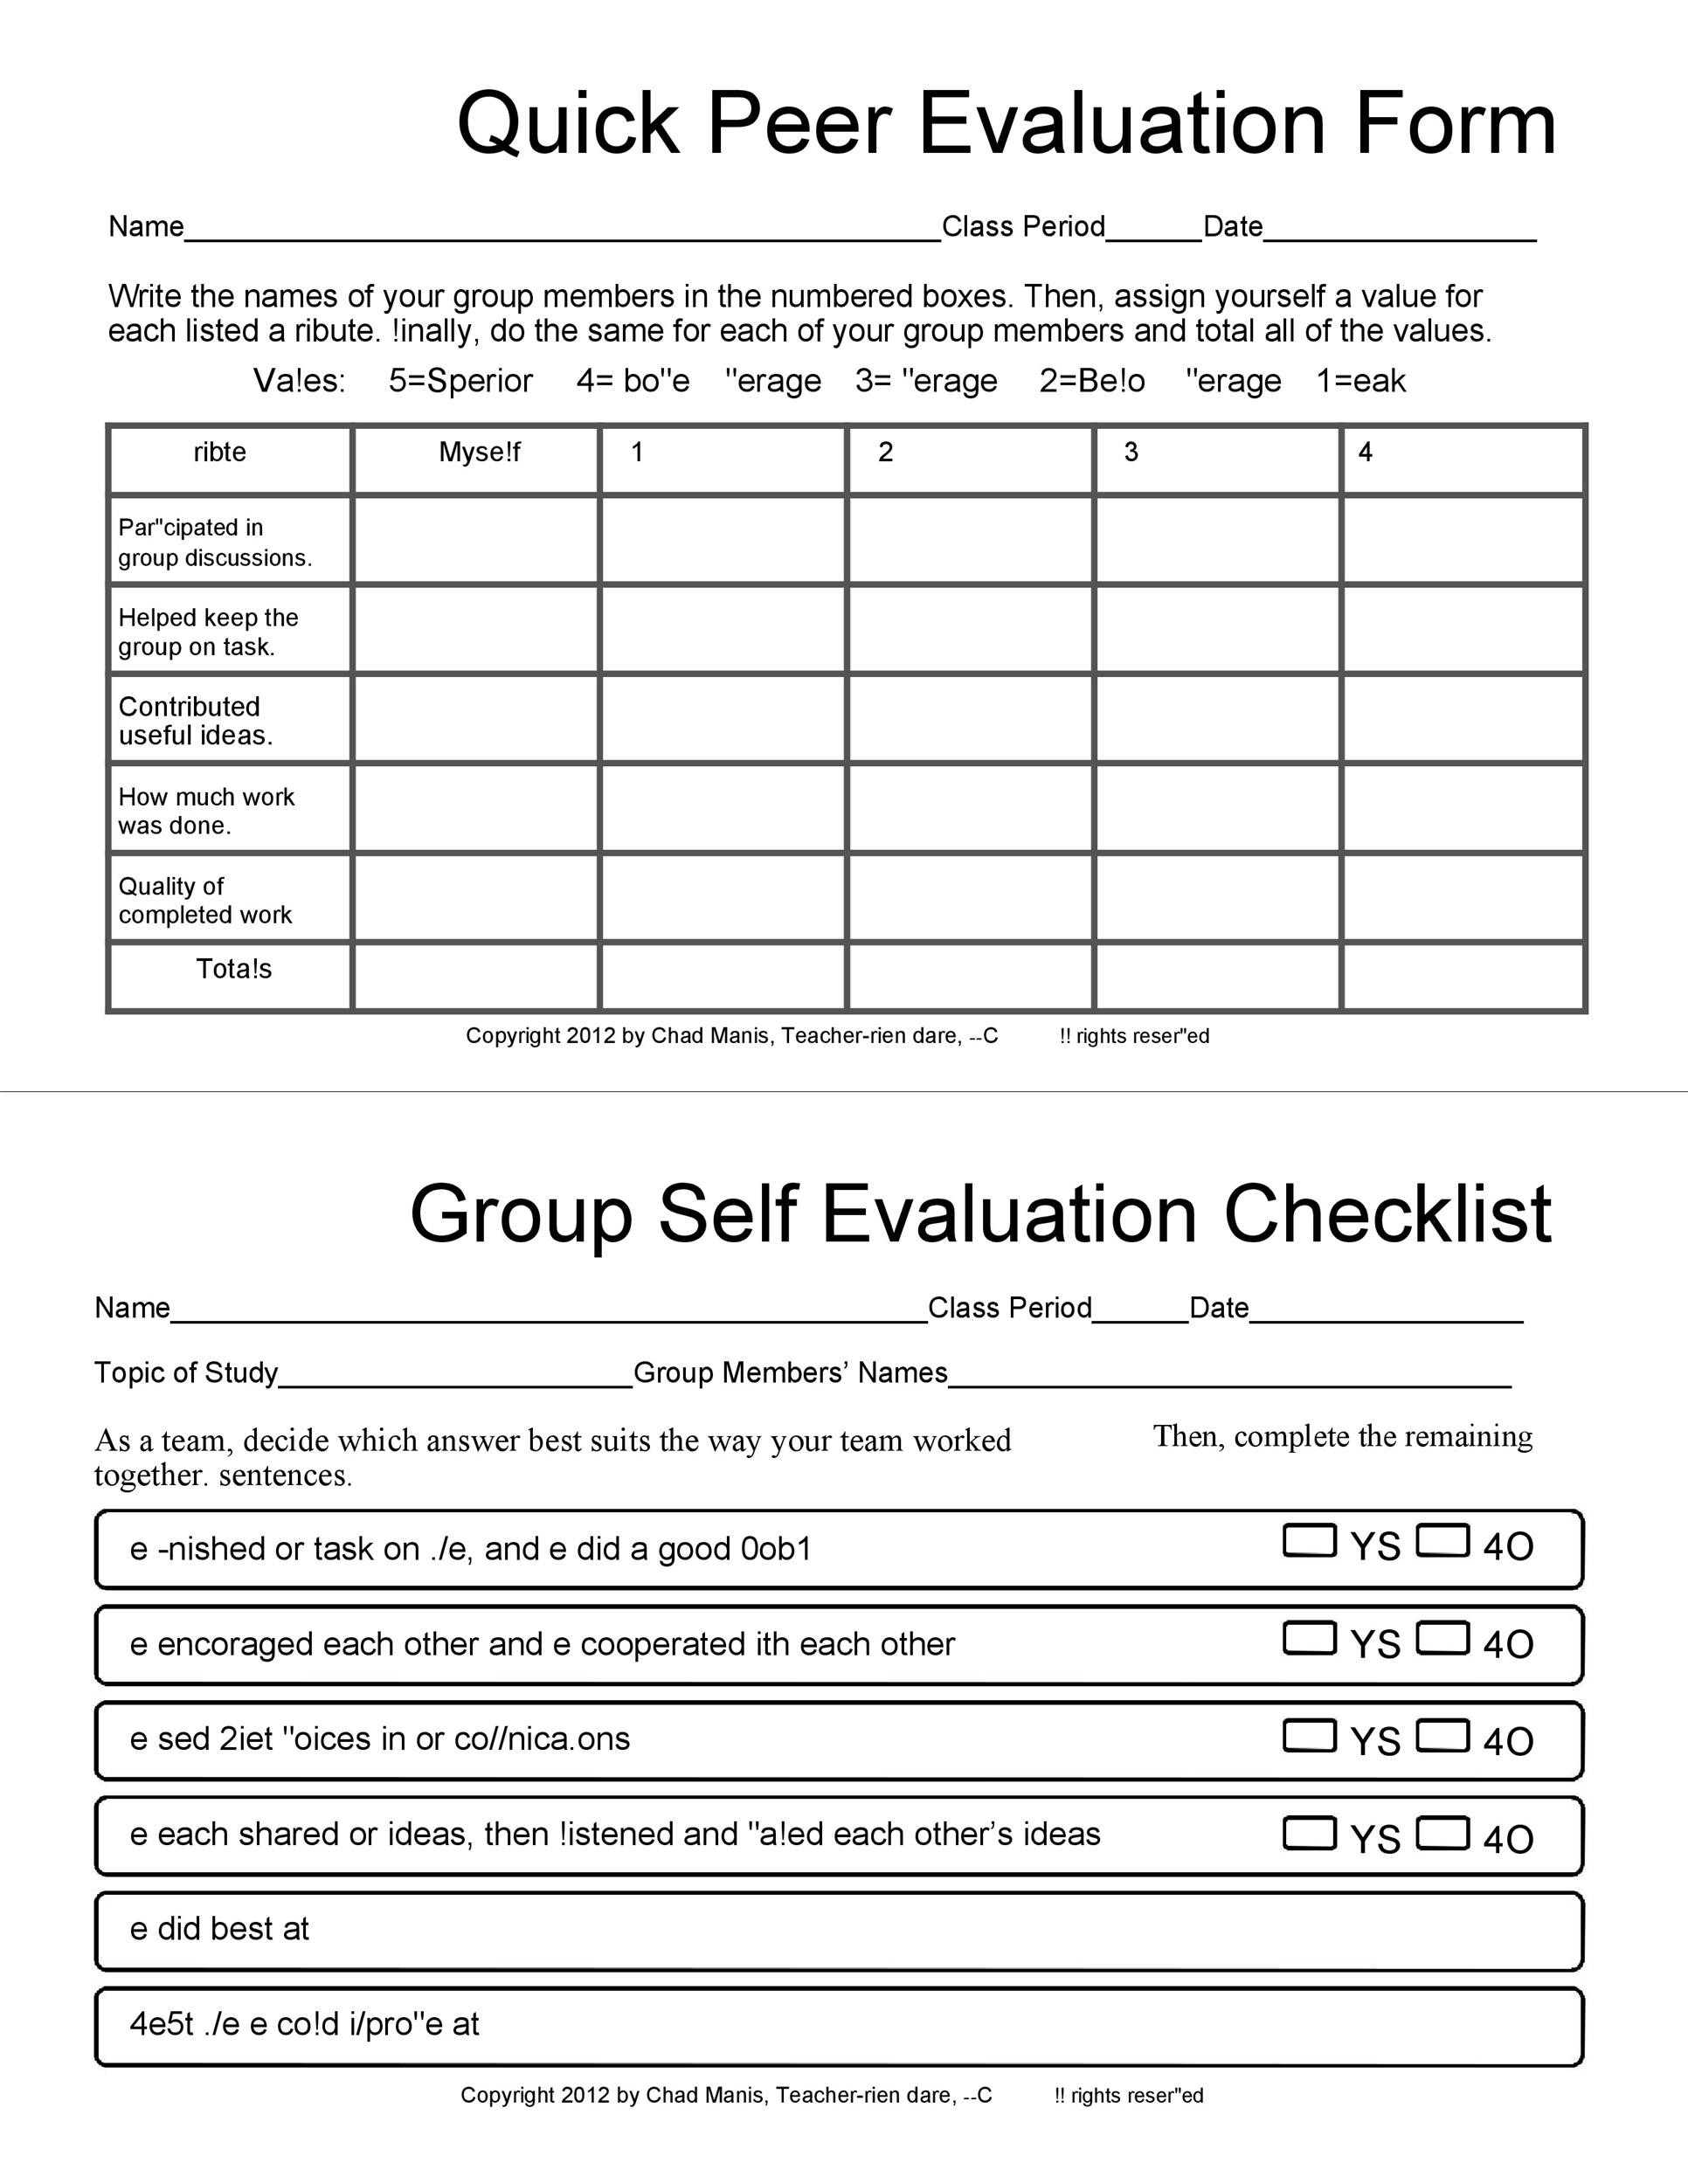 50+ Self Evaluation Examples, Forms  Questions ᐅ Template Lab